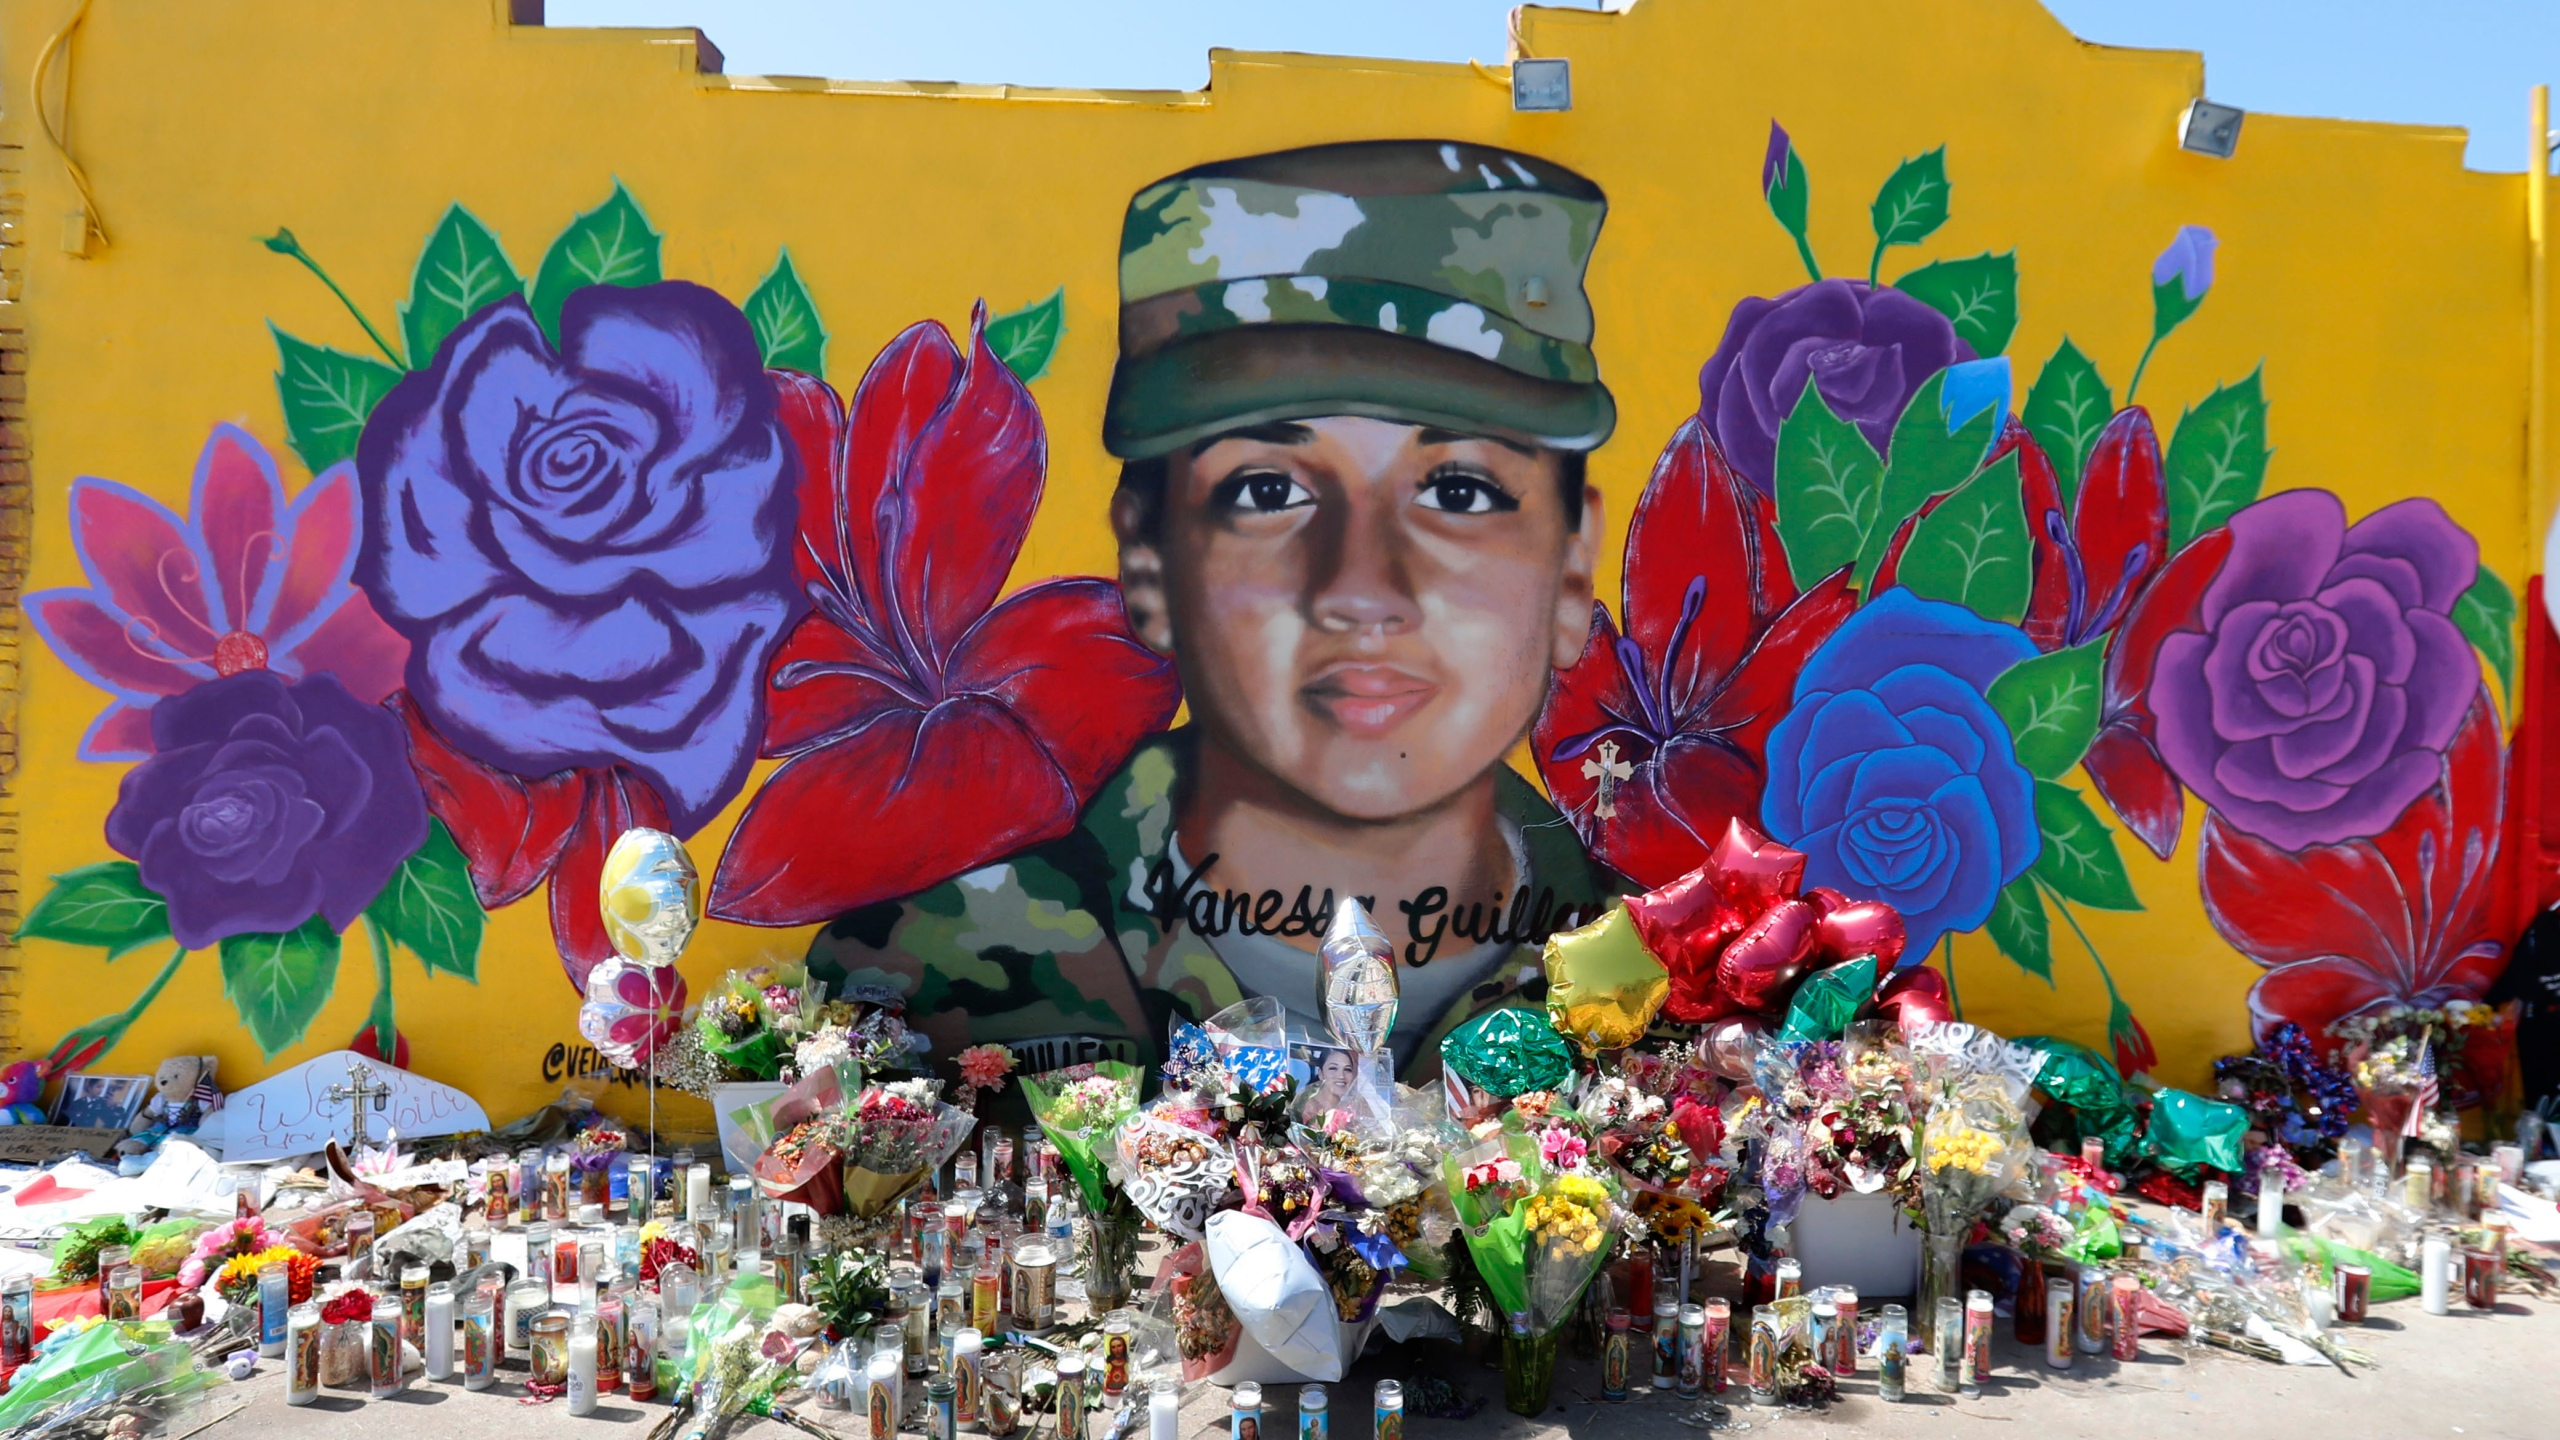 Offerings sit in front of a mural of slain Army Spc. Vanessa Guillen painted on a wall in the south side of Fort Worth, Texas on July 11, 2020. (AP Photo/LM Otero)